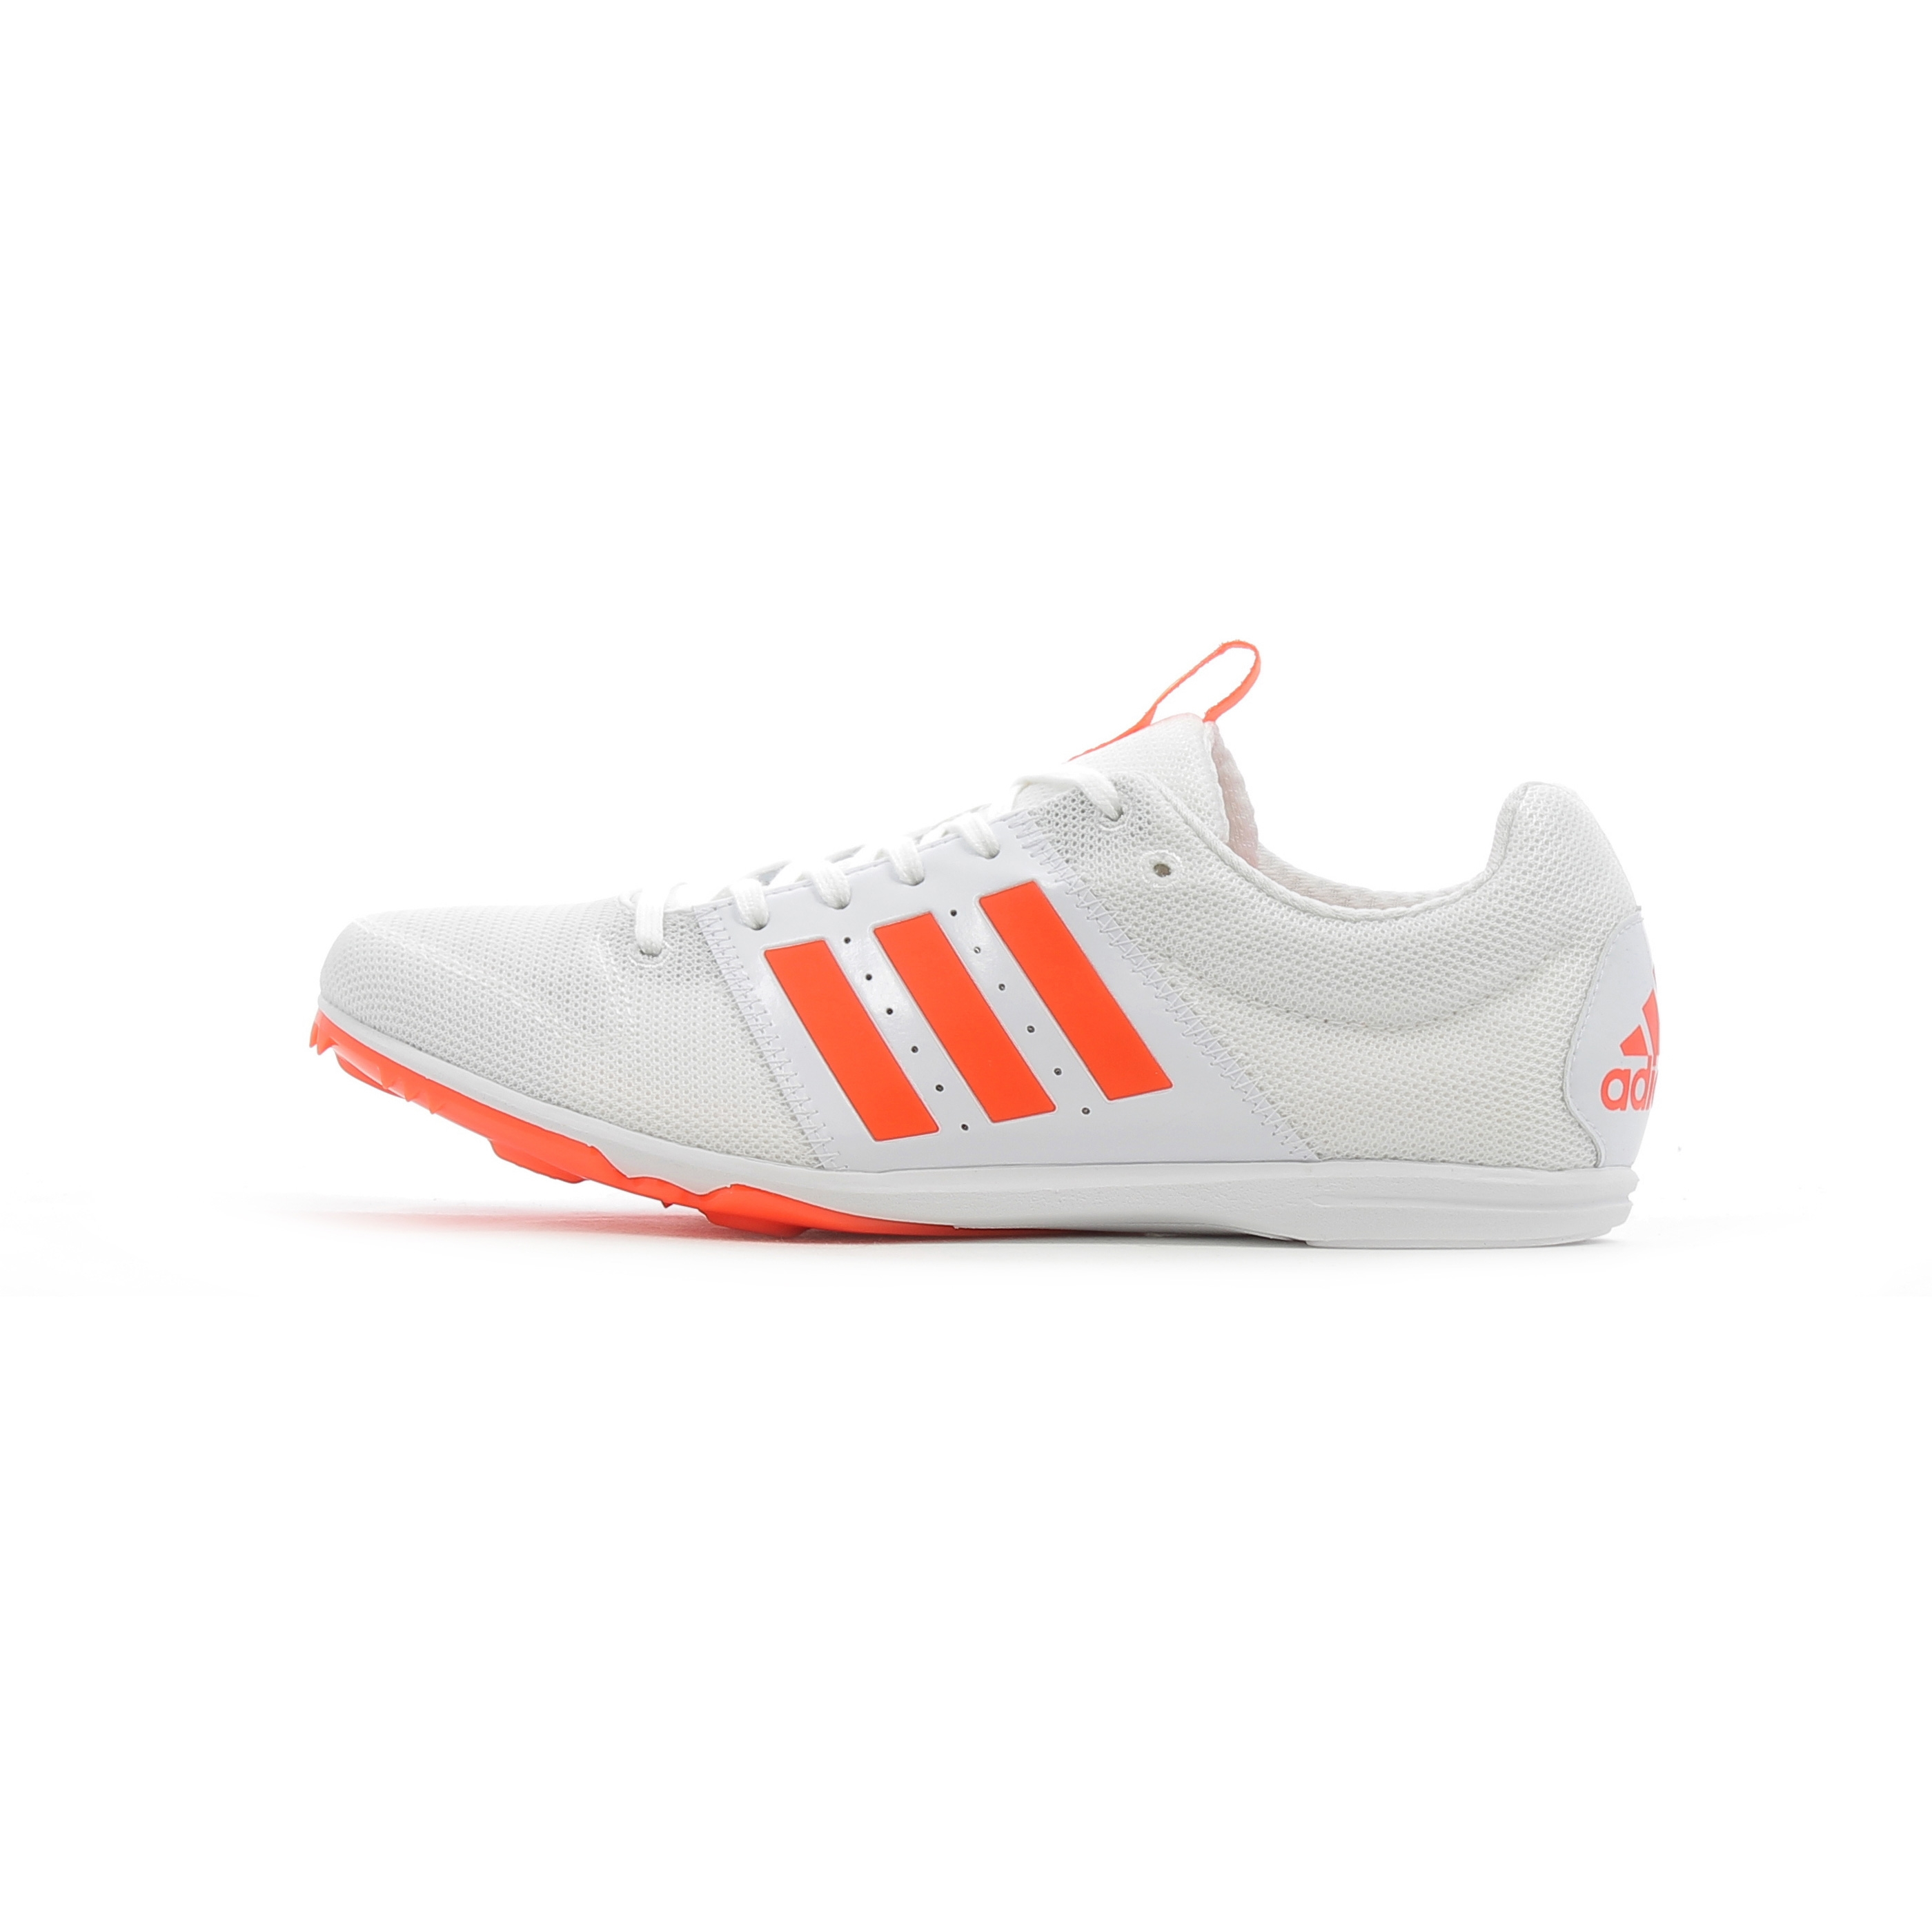 timeless design 864e0 796b7 Pointes dathlétisme Adidas Performance Allroundstar Jr